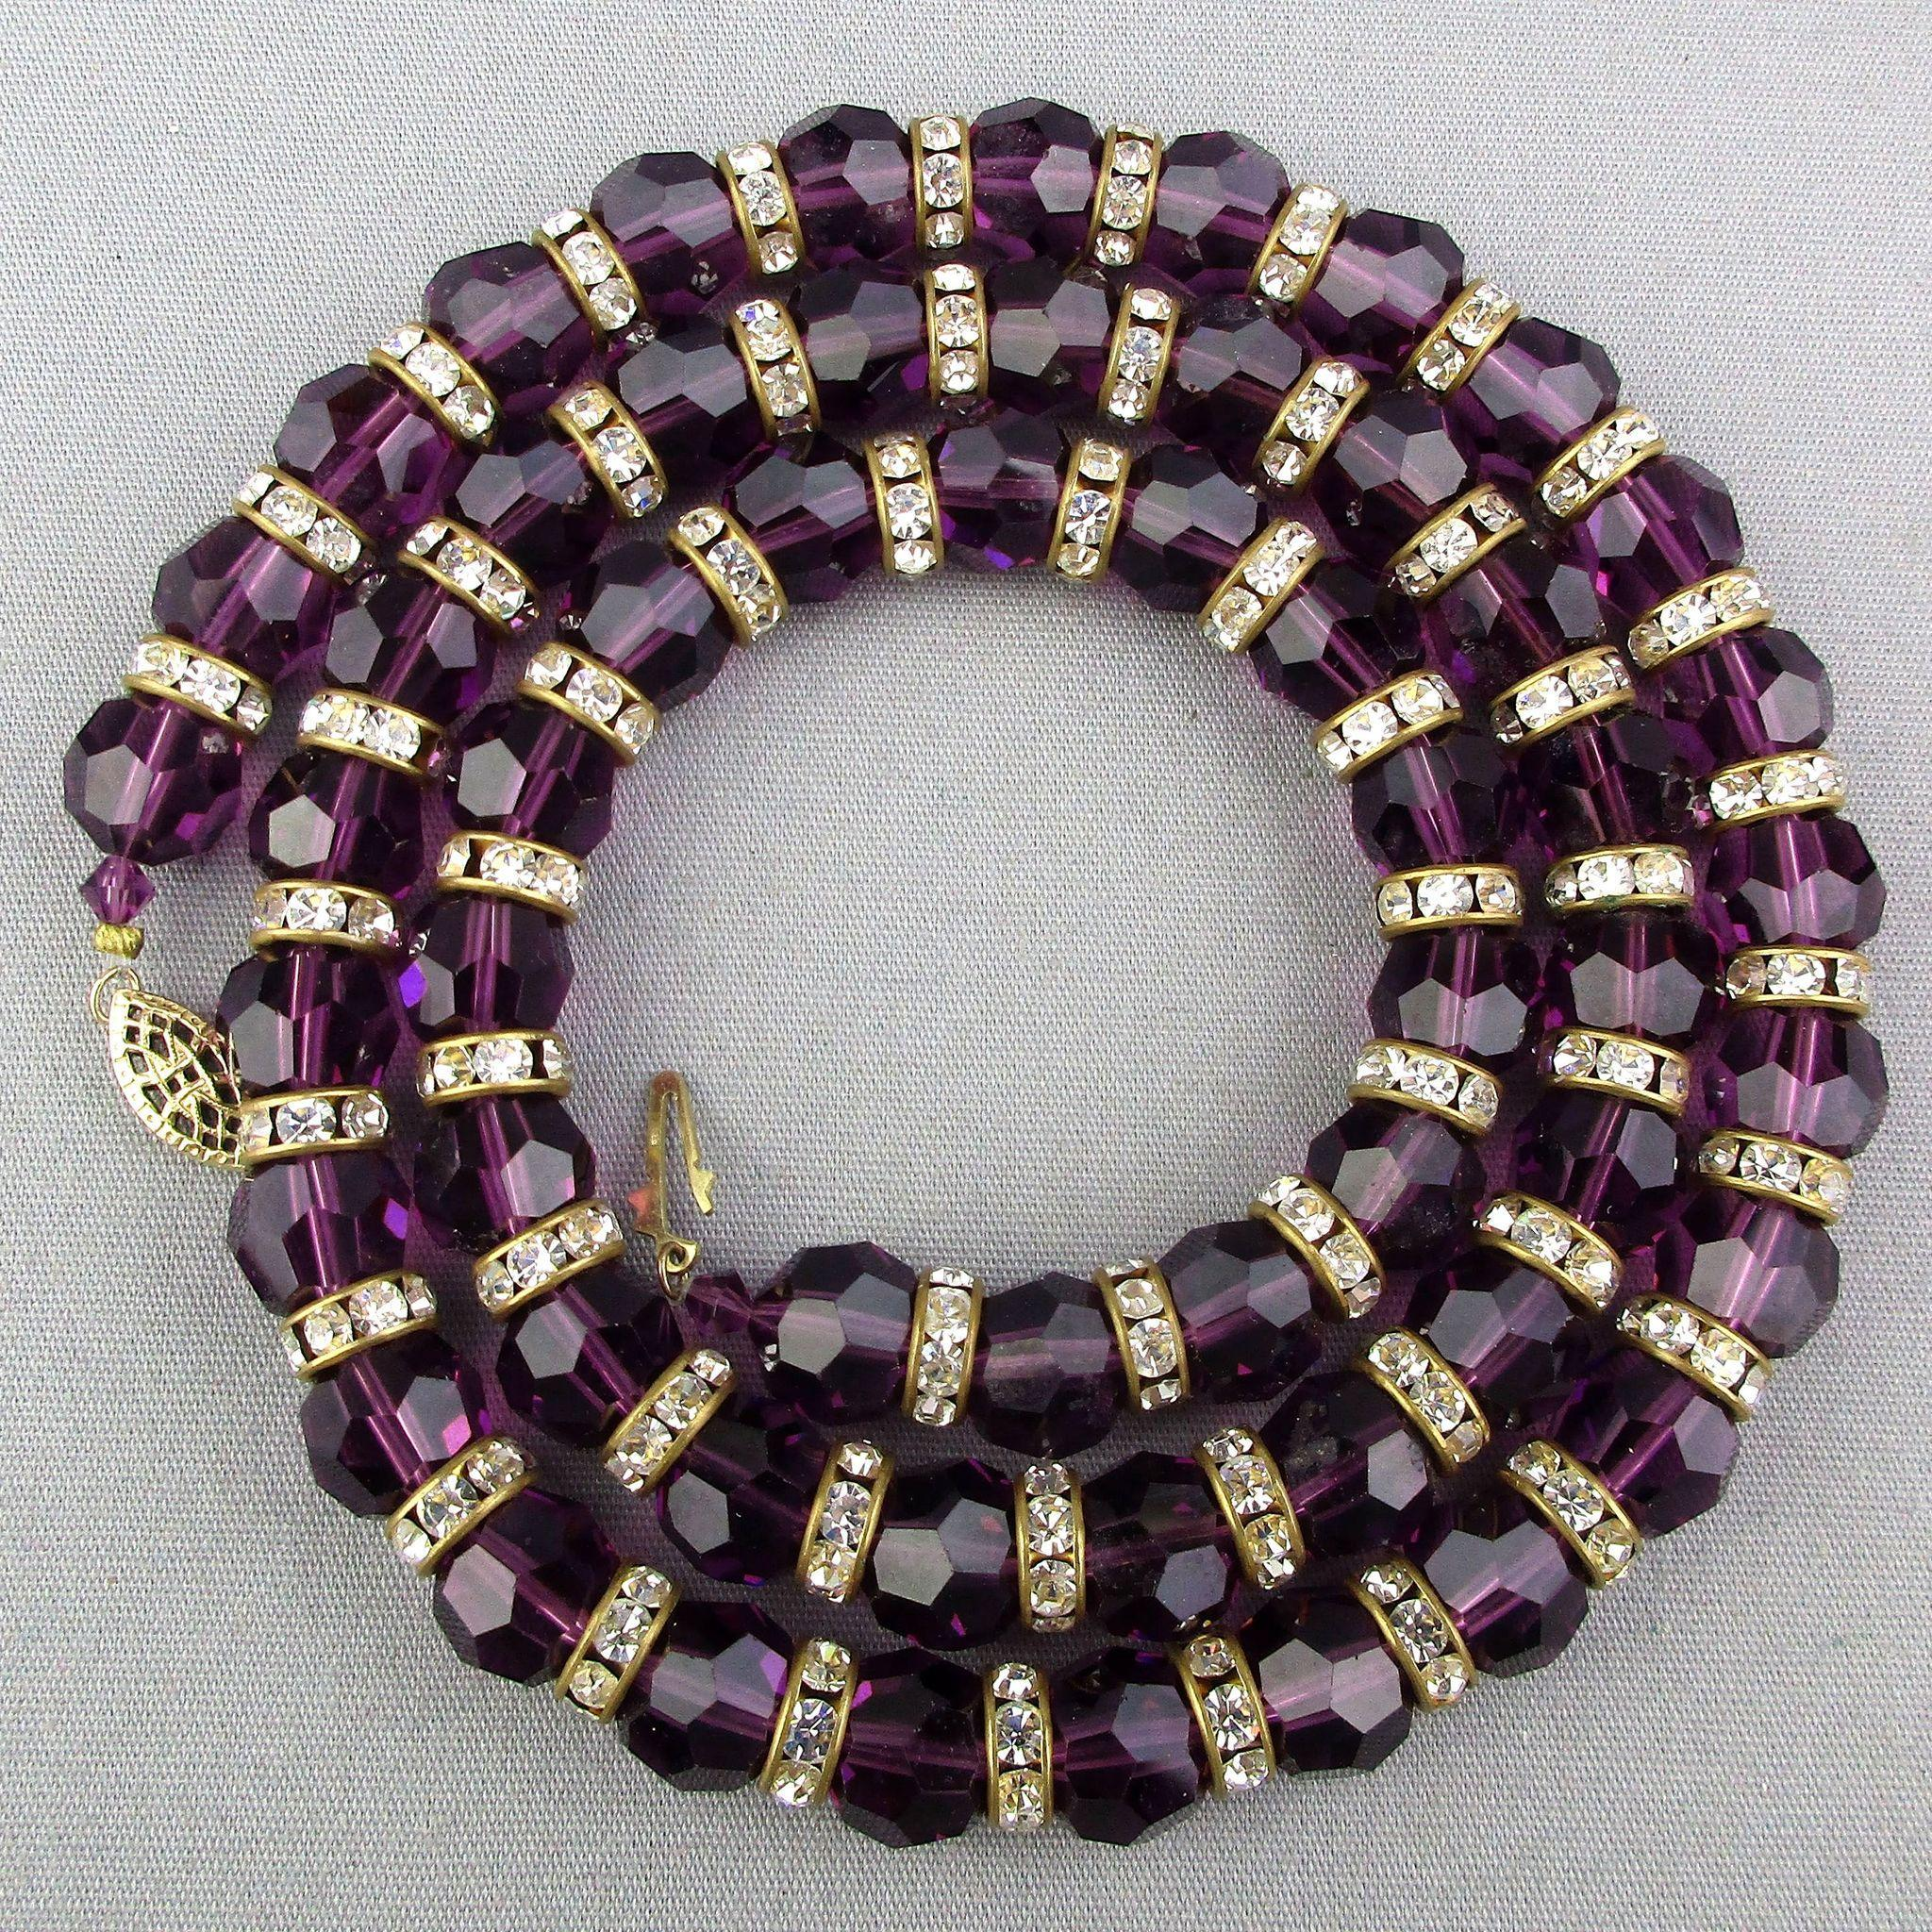 Grand Amethyst Rhinestone Bead Necklace 99 Grams